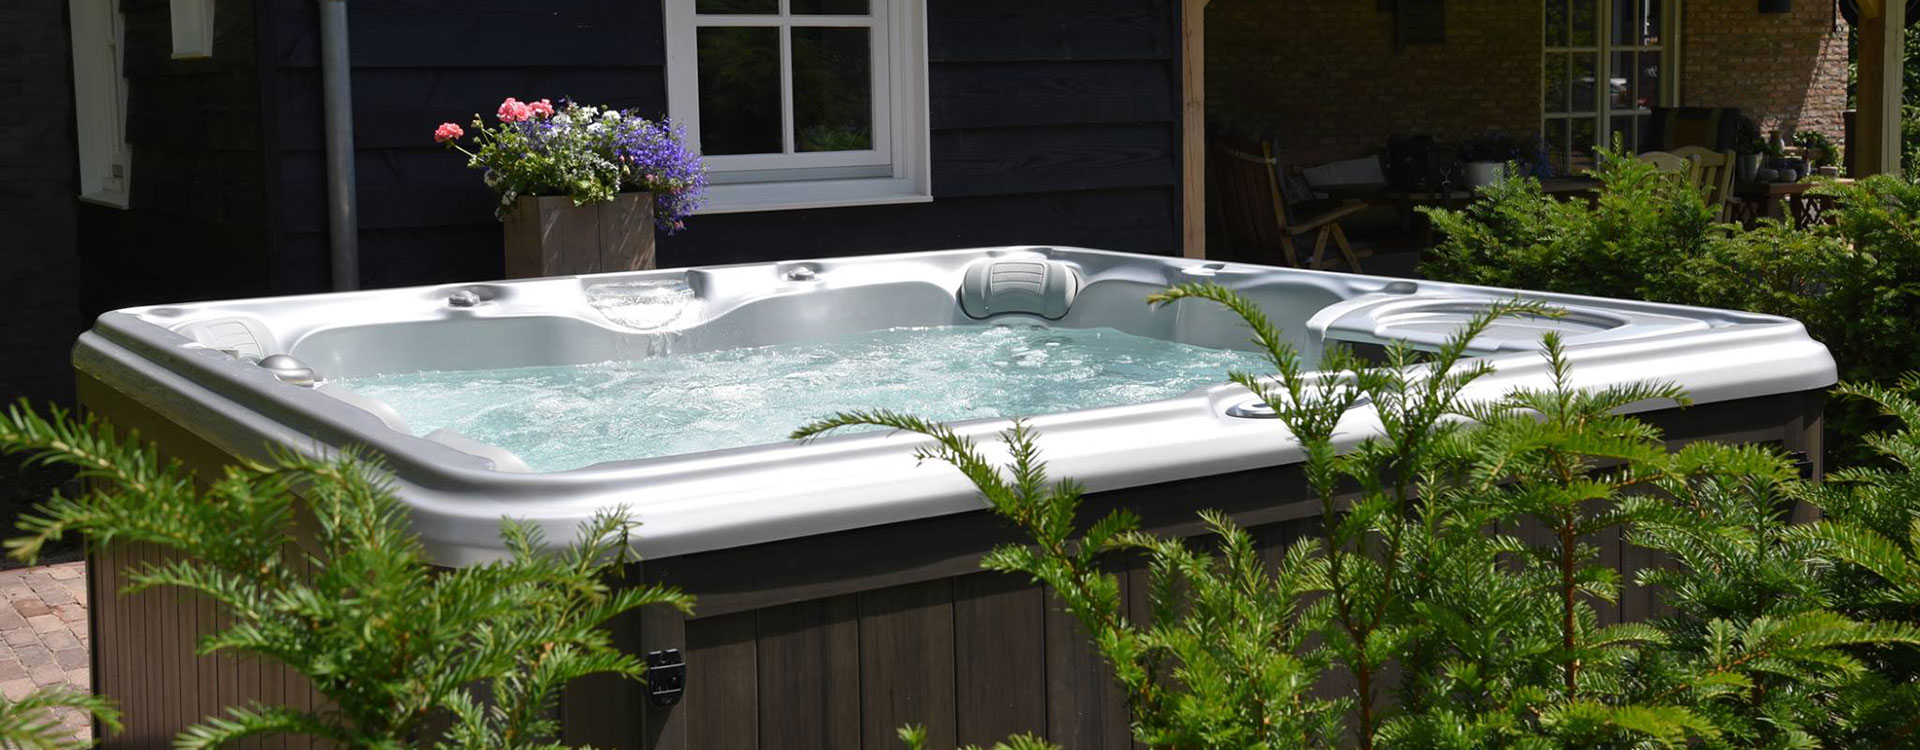 Hot Tub Store in Lubbock, TX | Hot Tubs | Hot Tub Installation